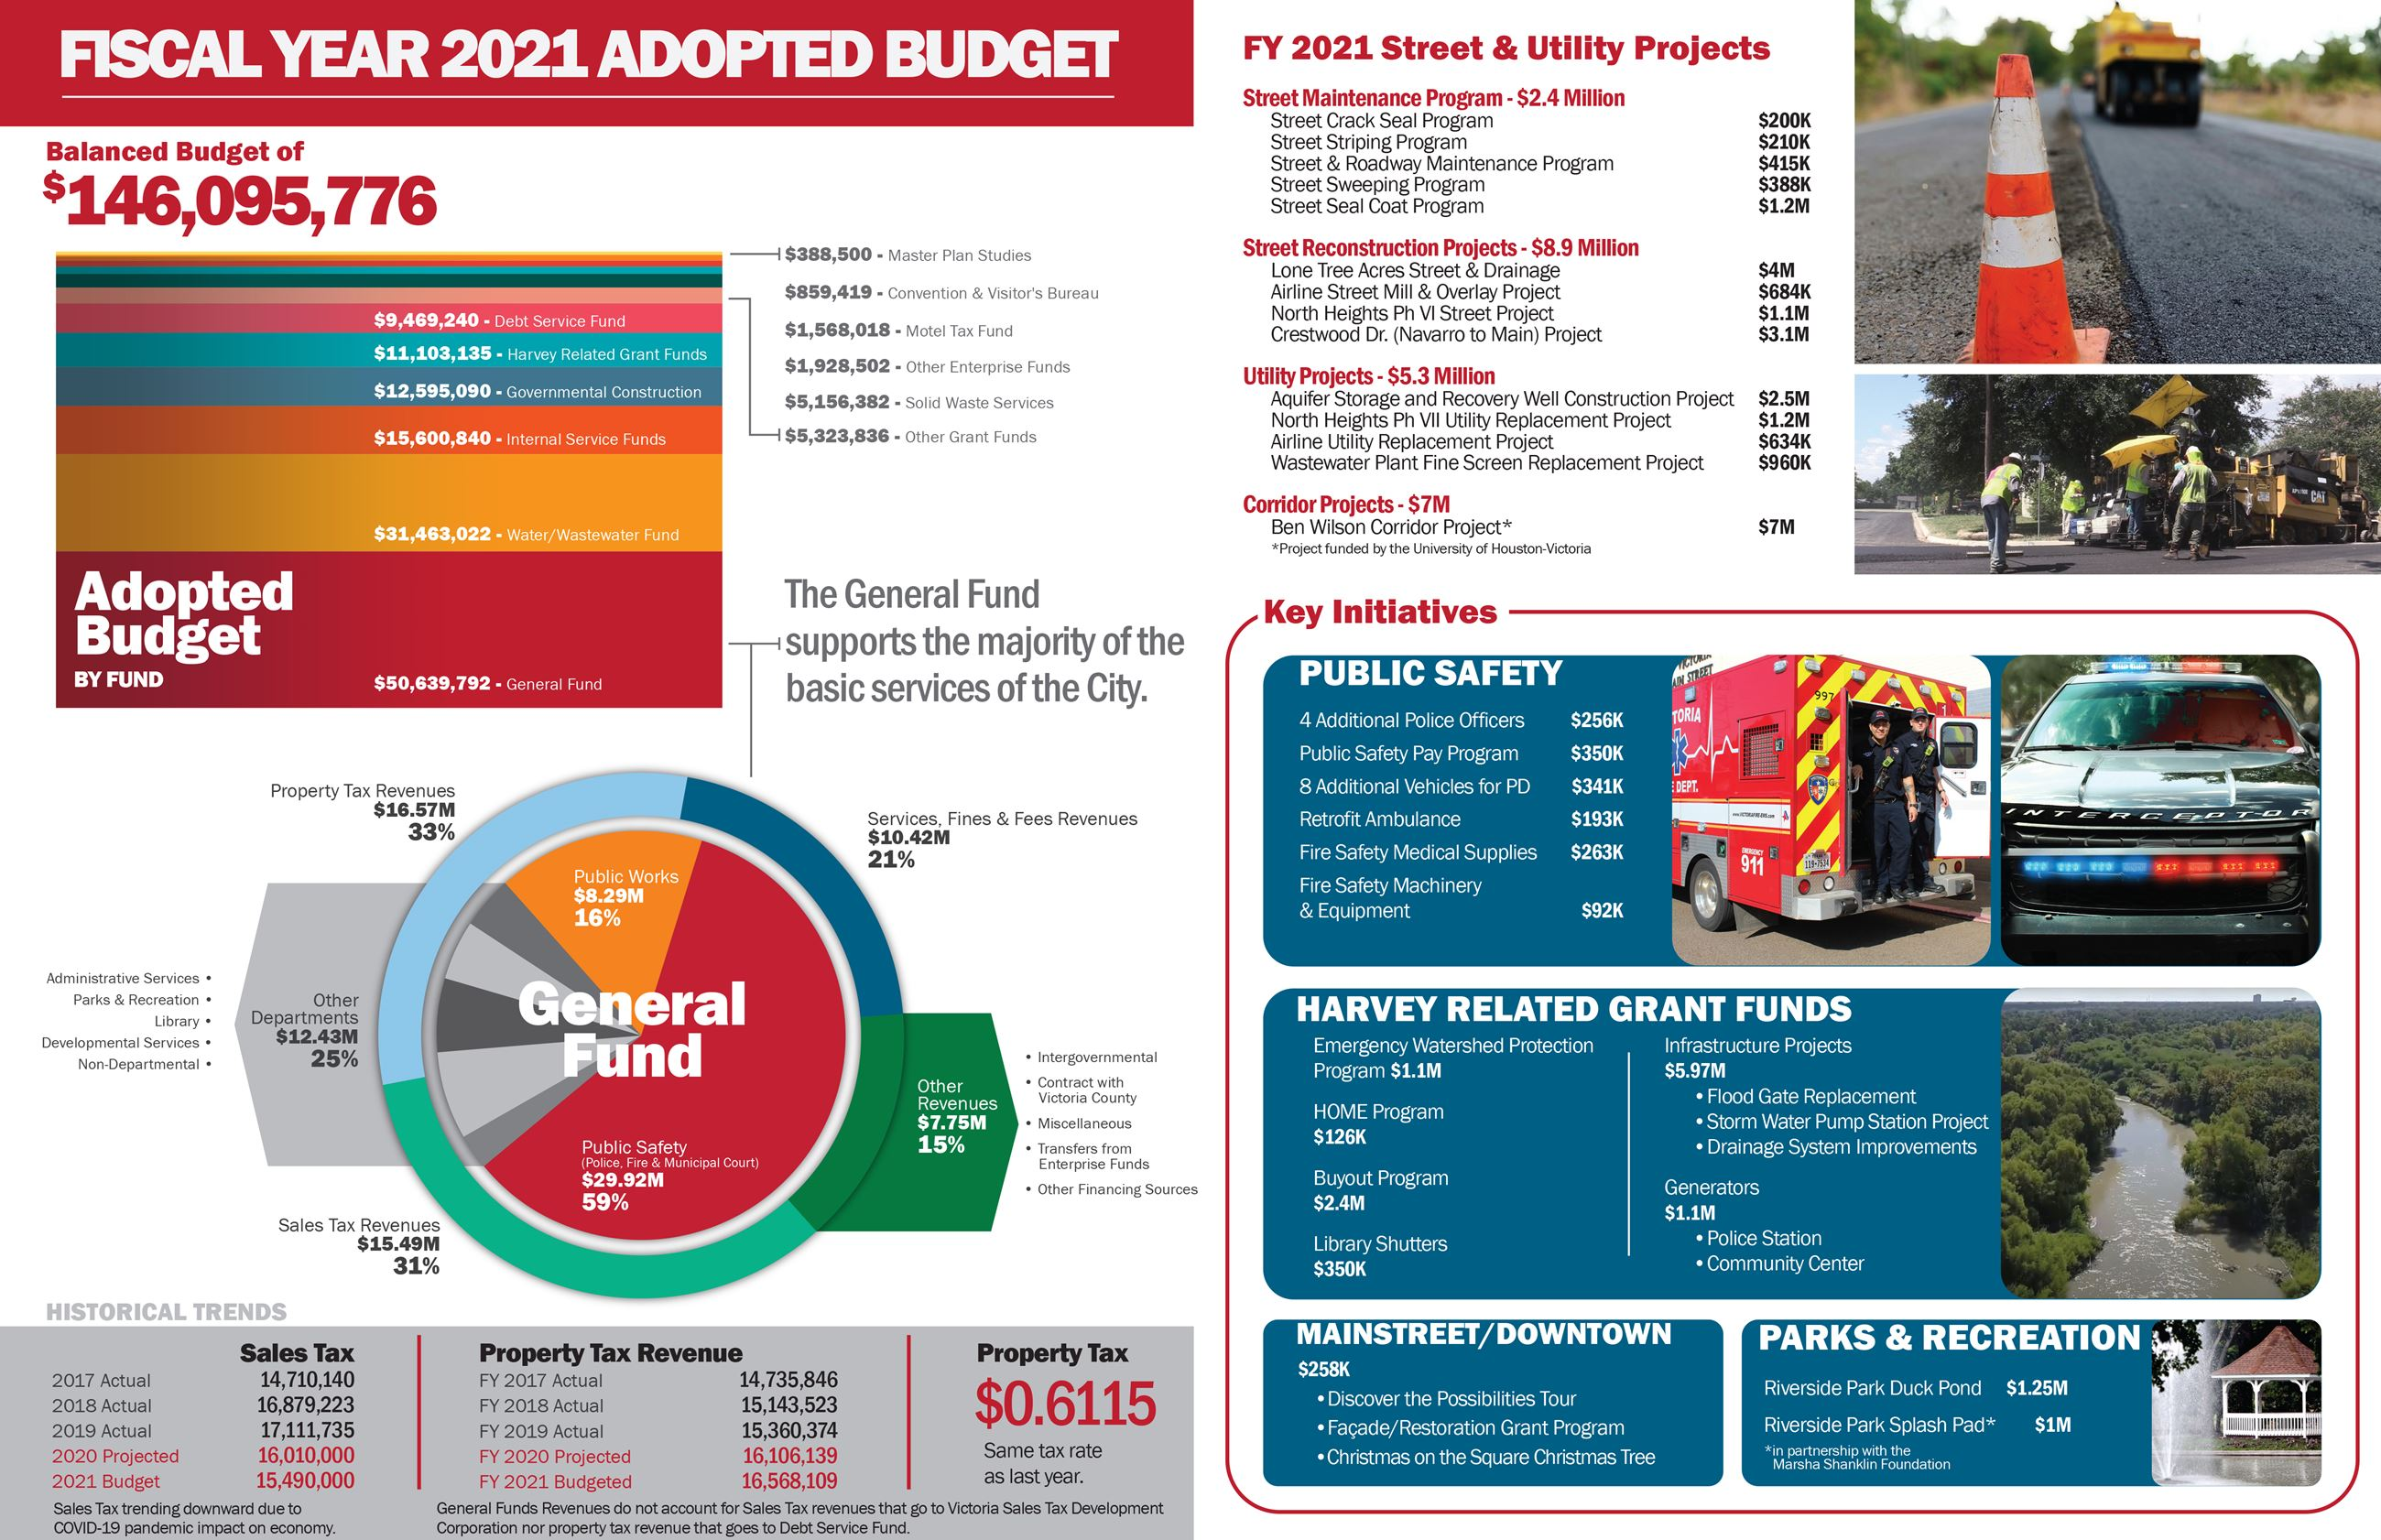 Fiscal Year 2021 Adopted Budget page 1